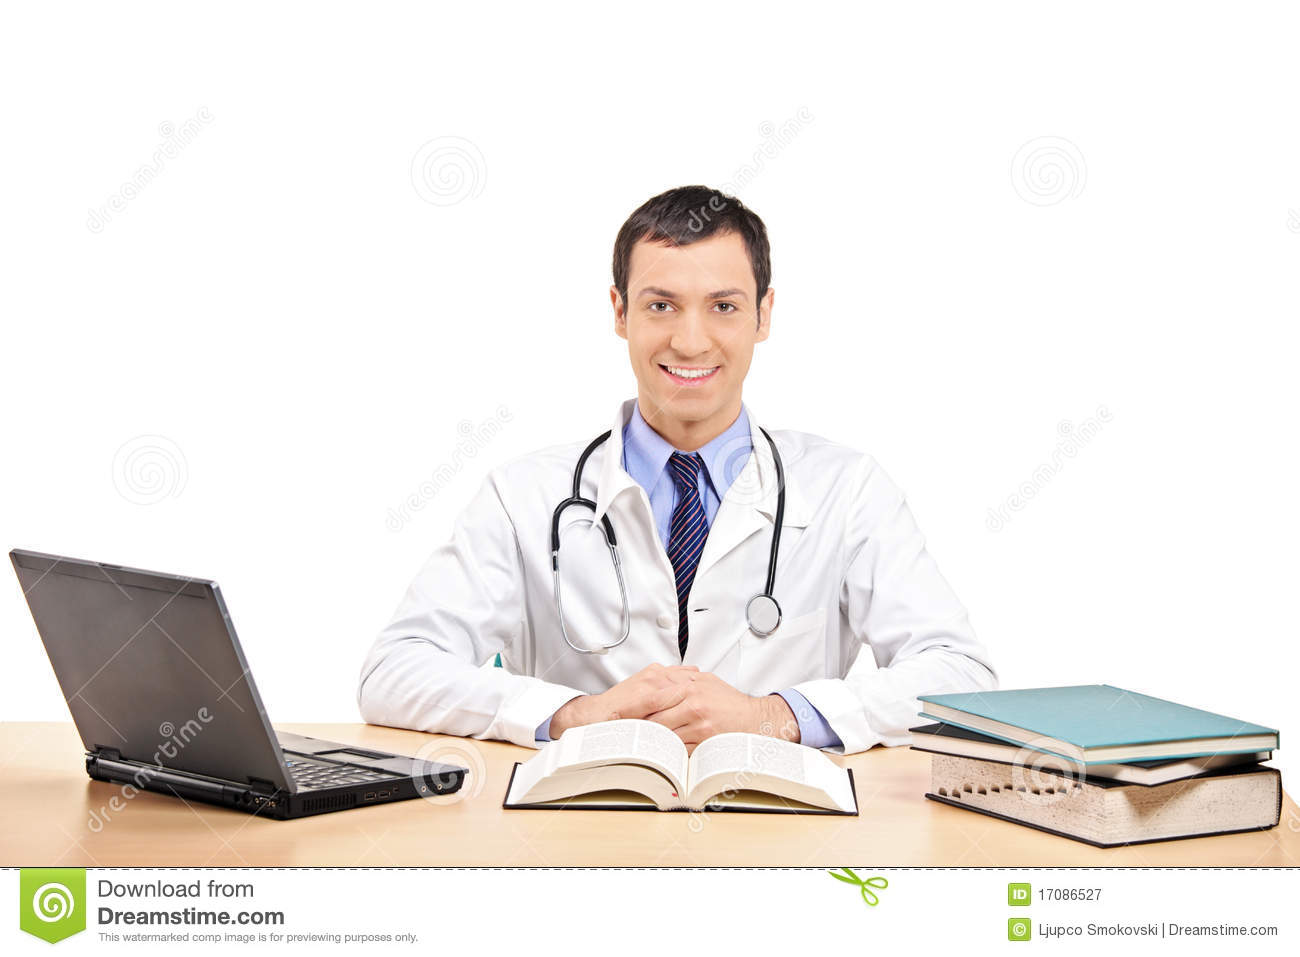 A doctor posing in his office